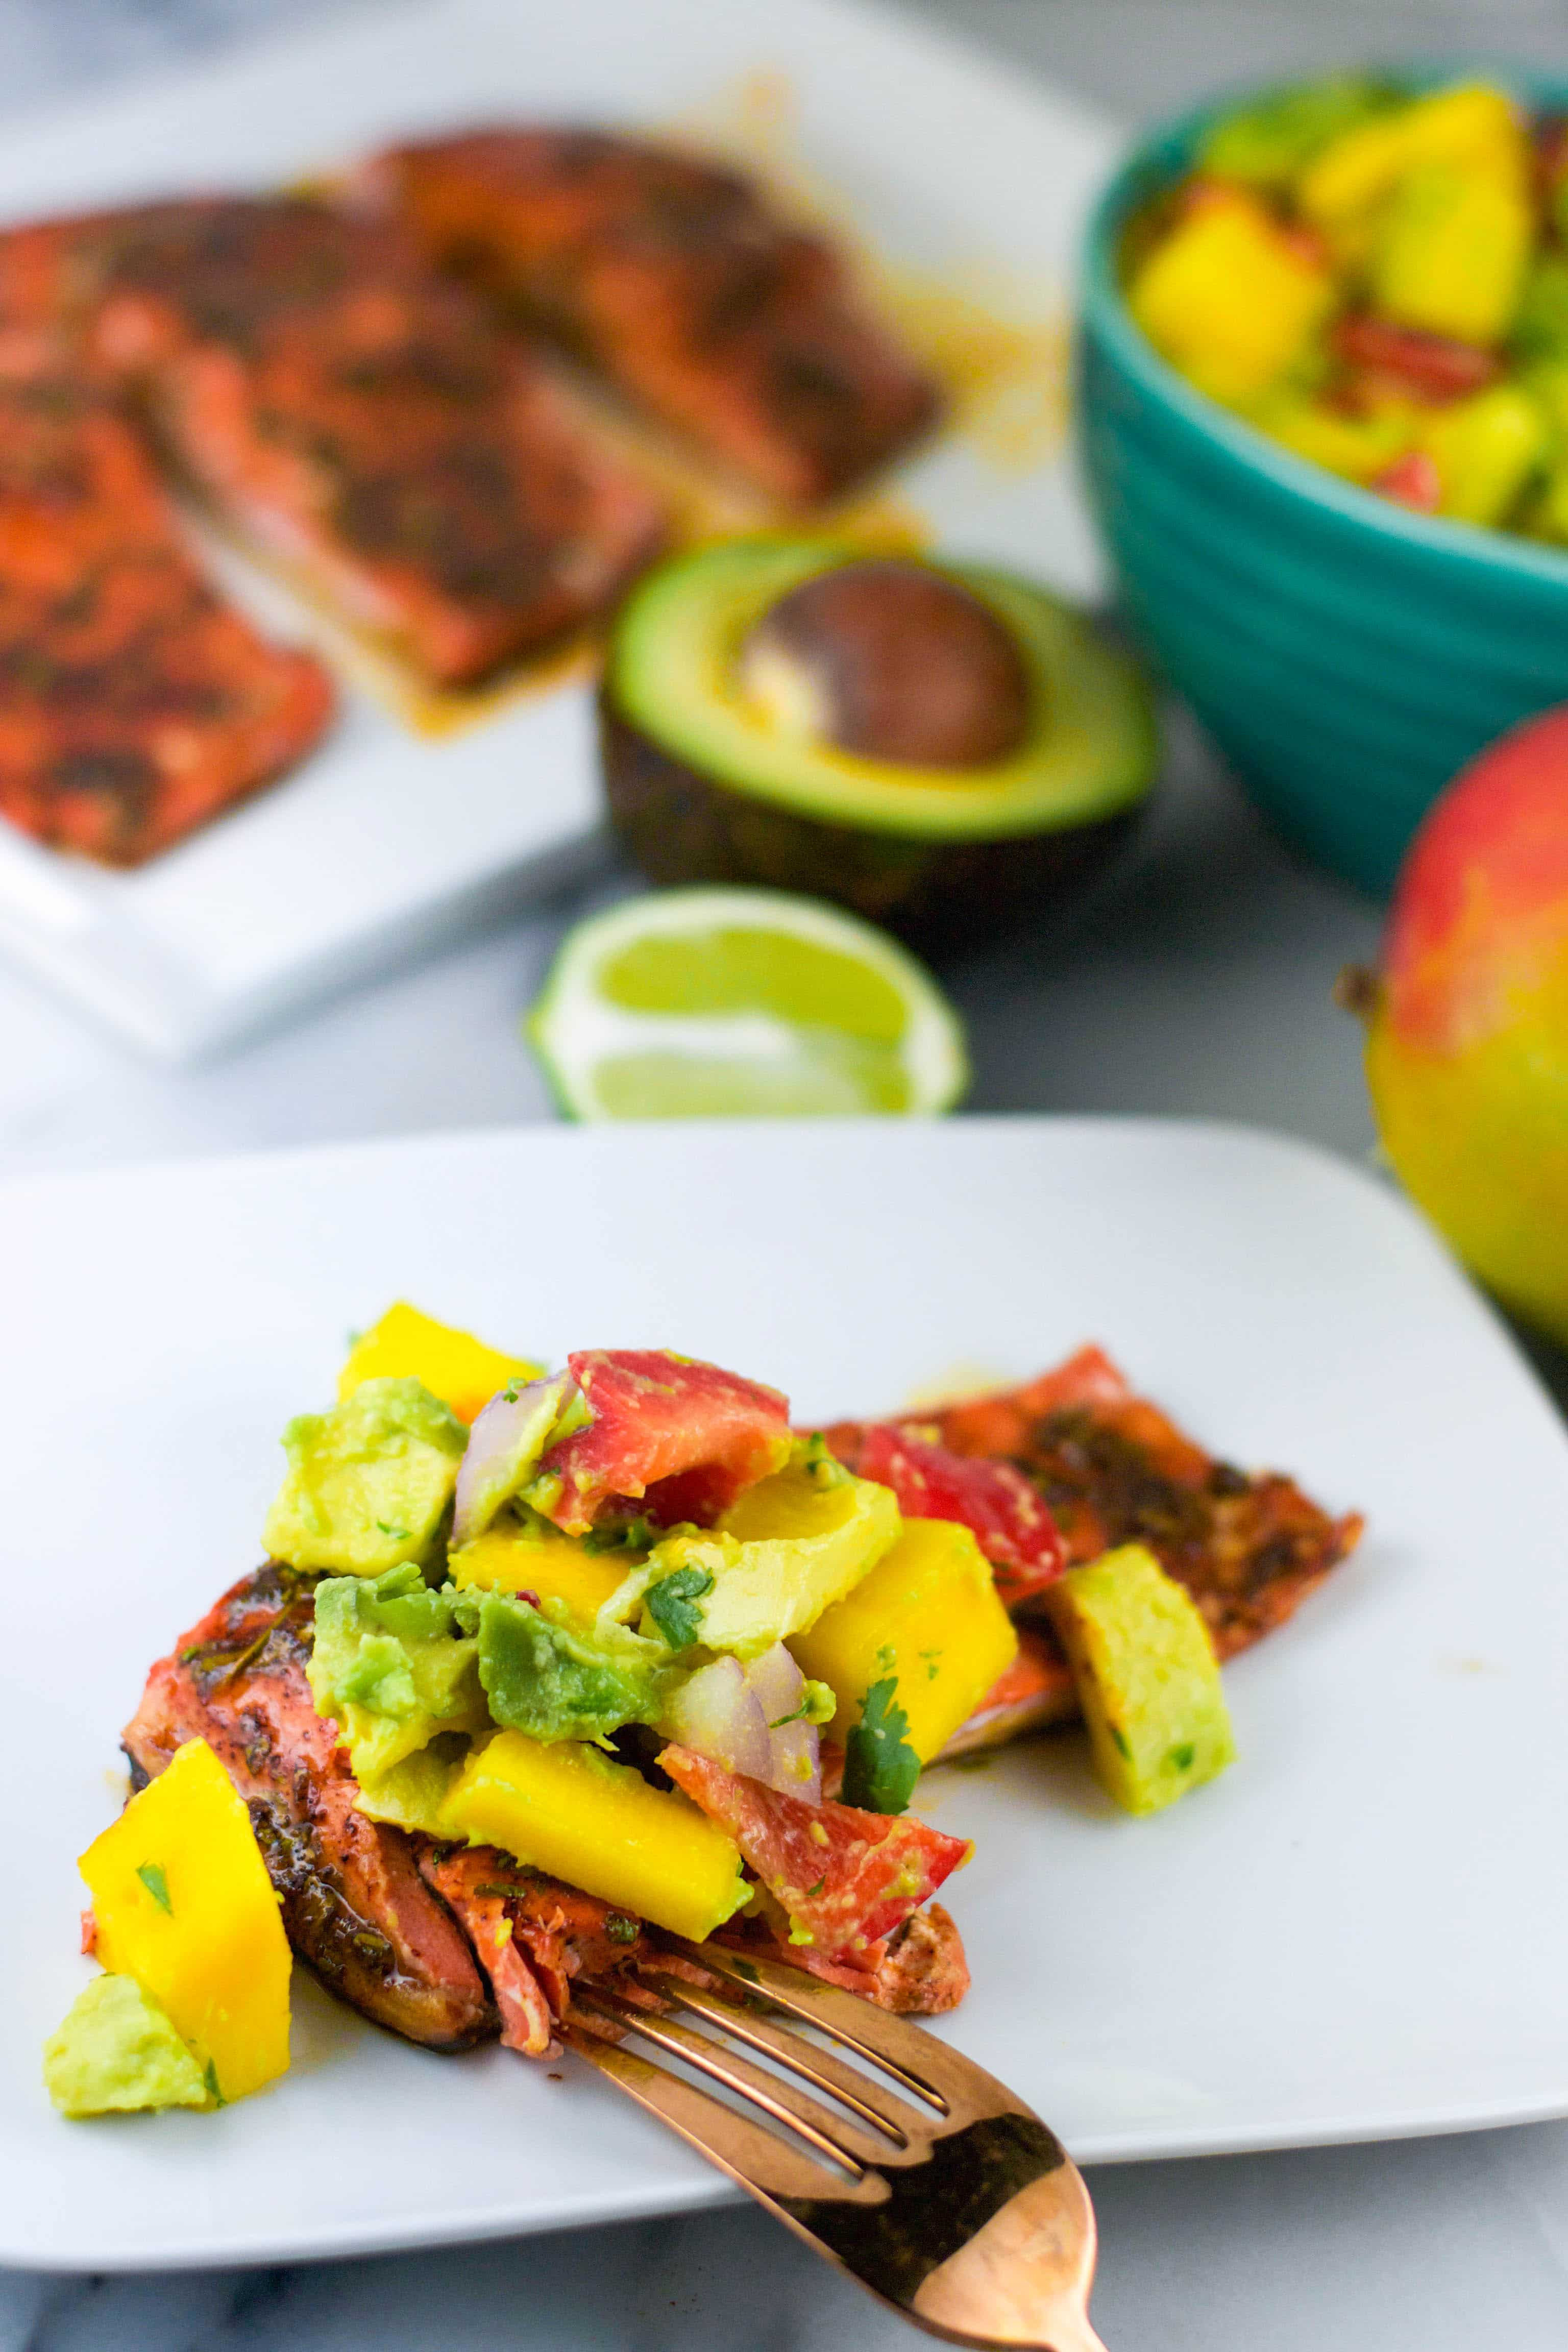 a plate of salmon with avocado mango salsa on top with a fork next to it.